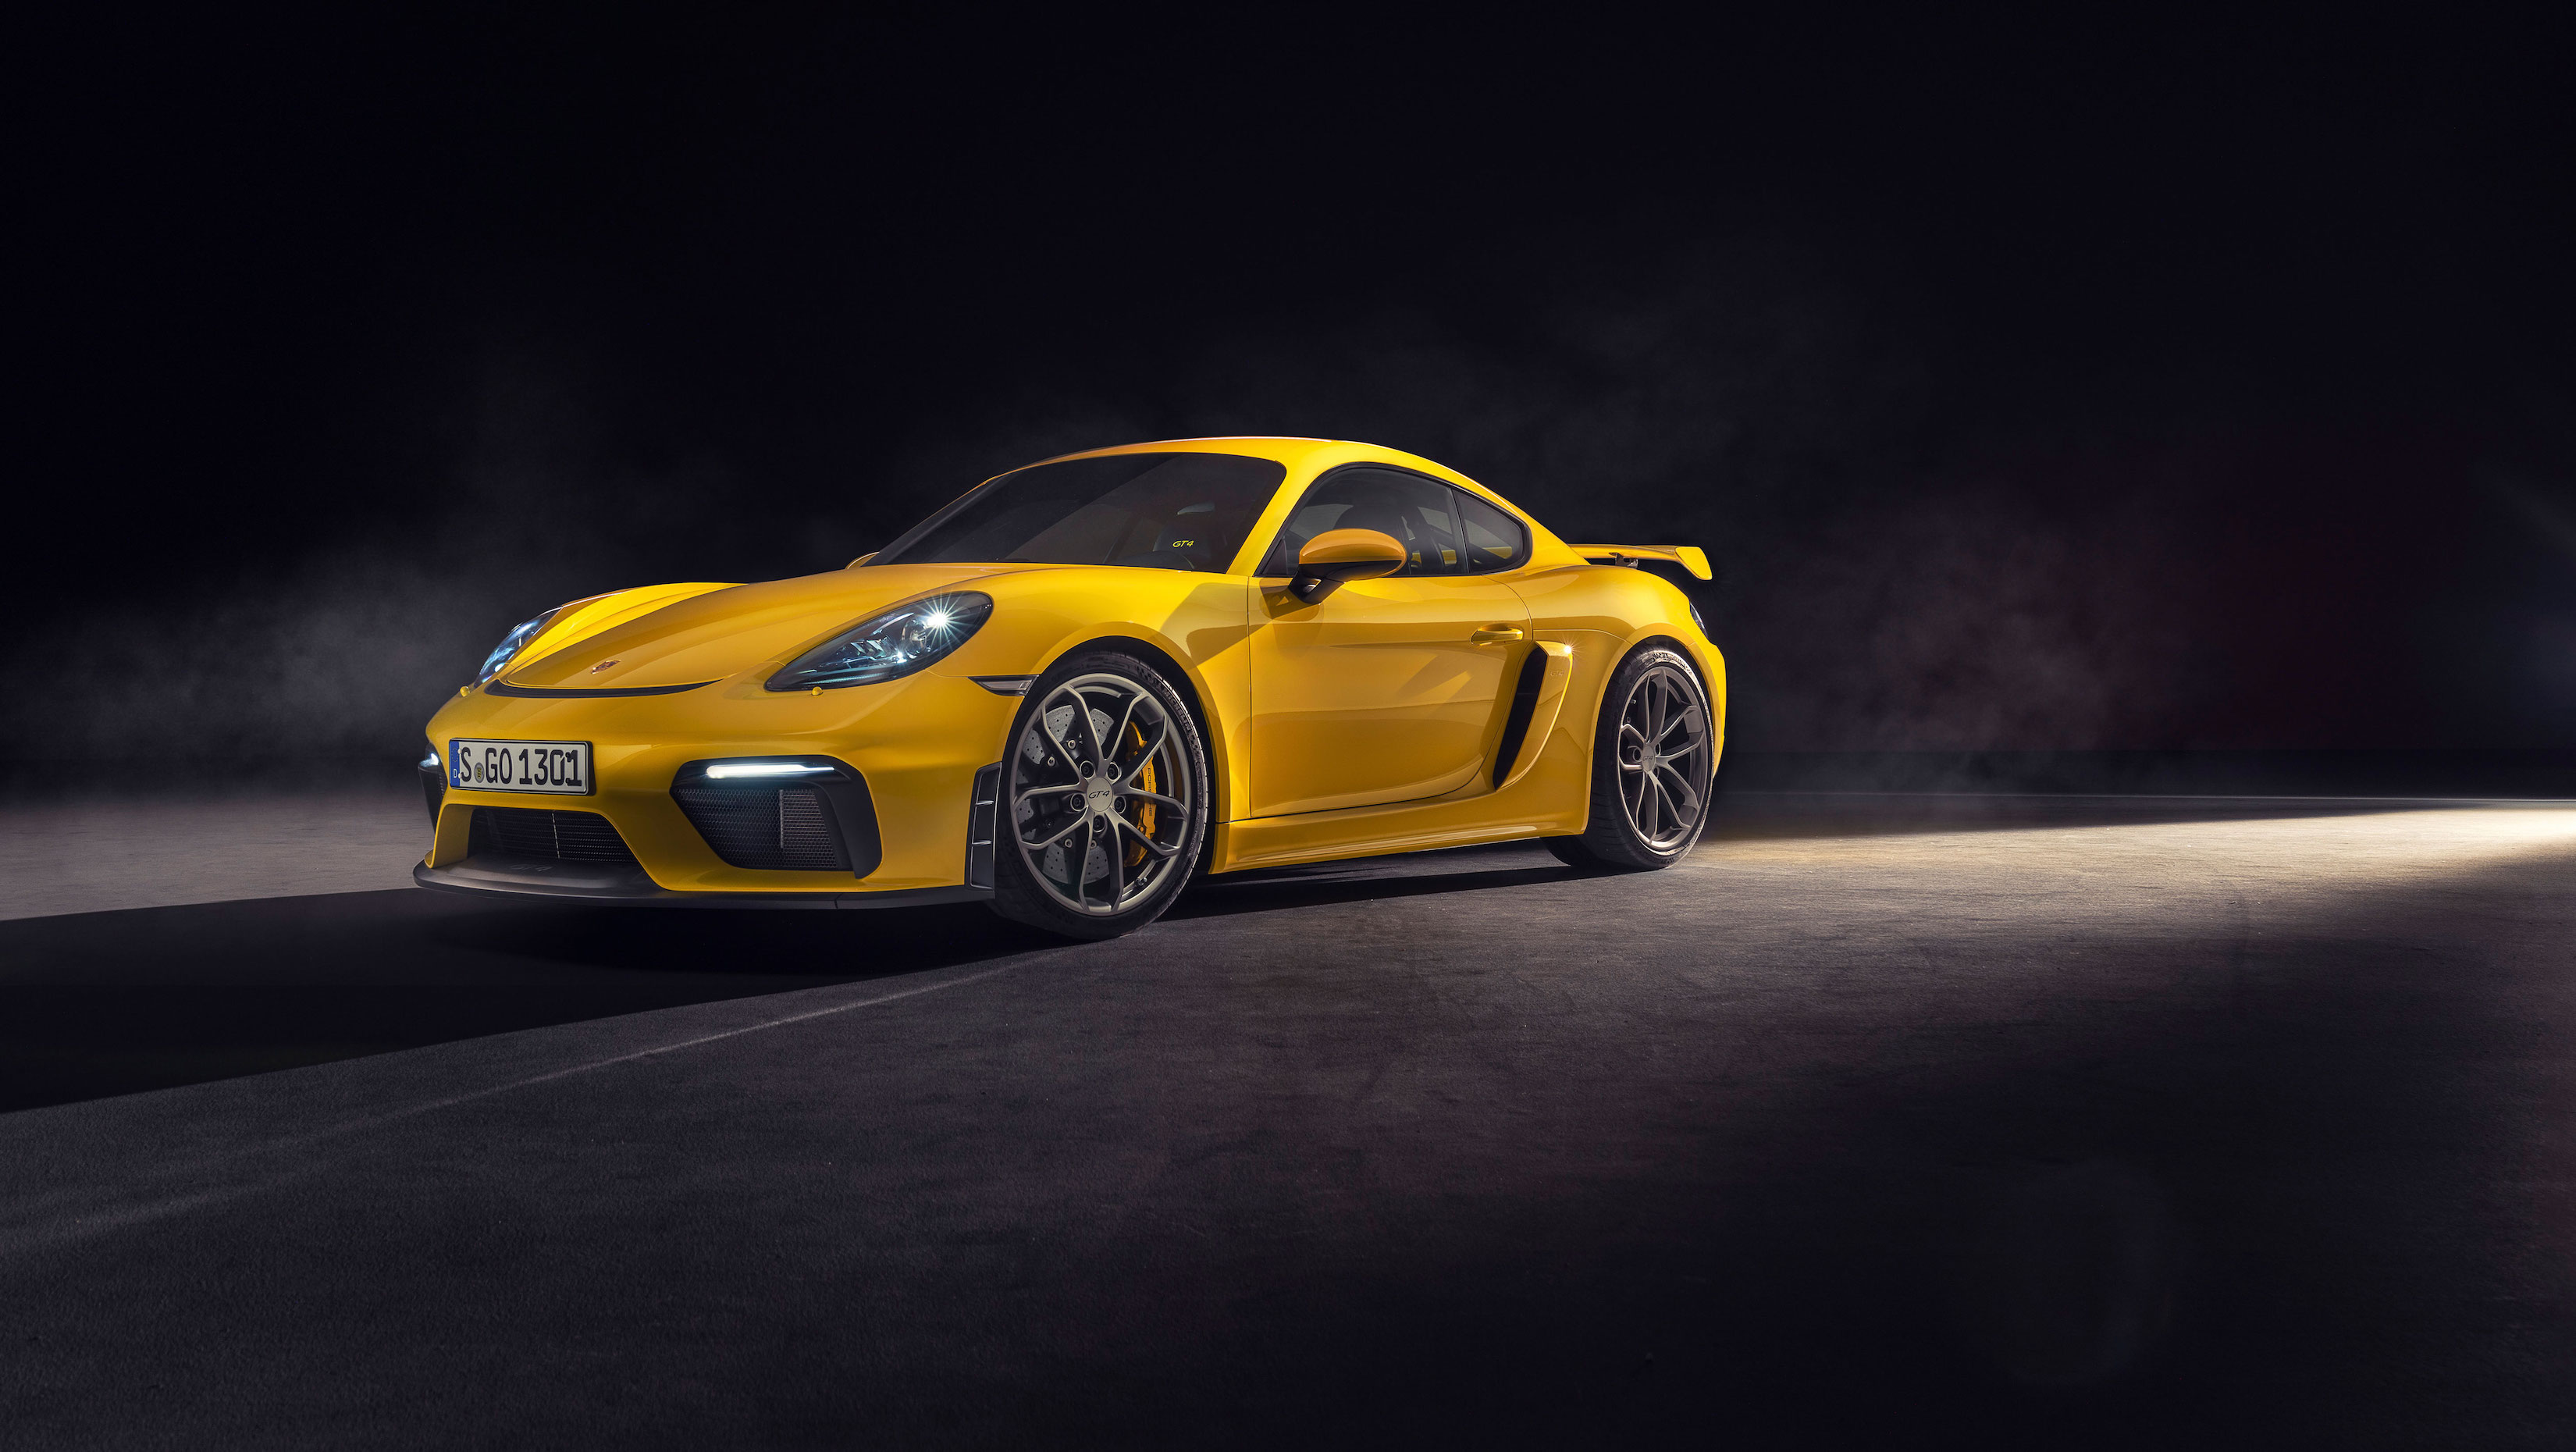 Optimised for the racetrack: The 718 Cayman GT4